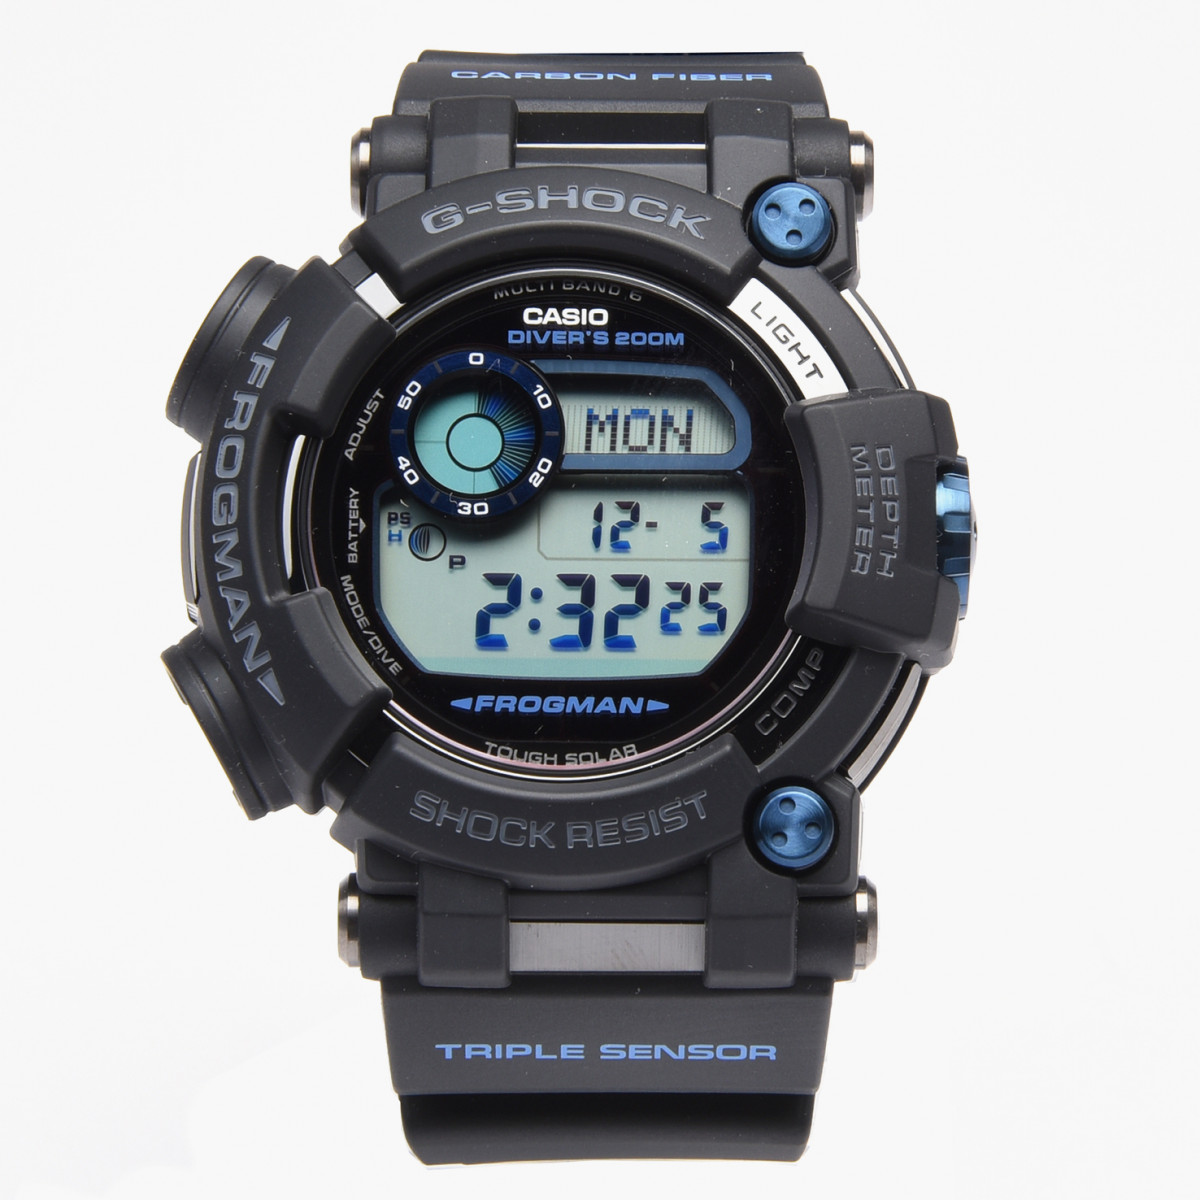 Montre CASIO G-SHOCK -GWF-D1000B-1ER